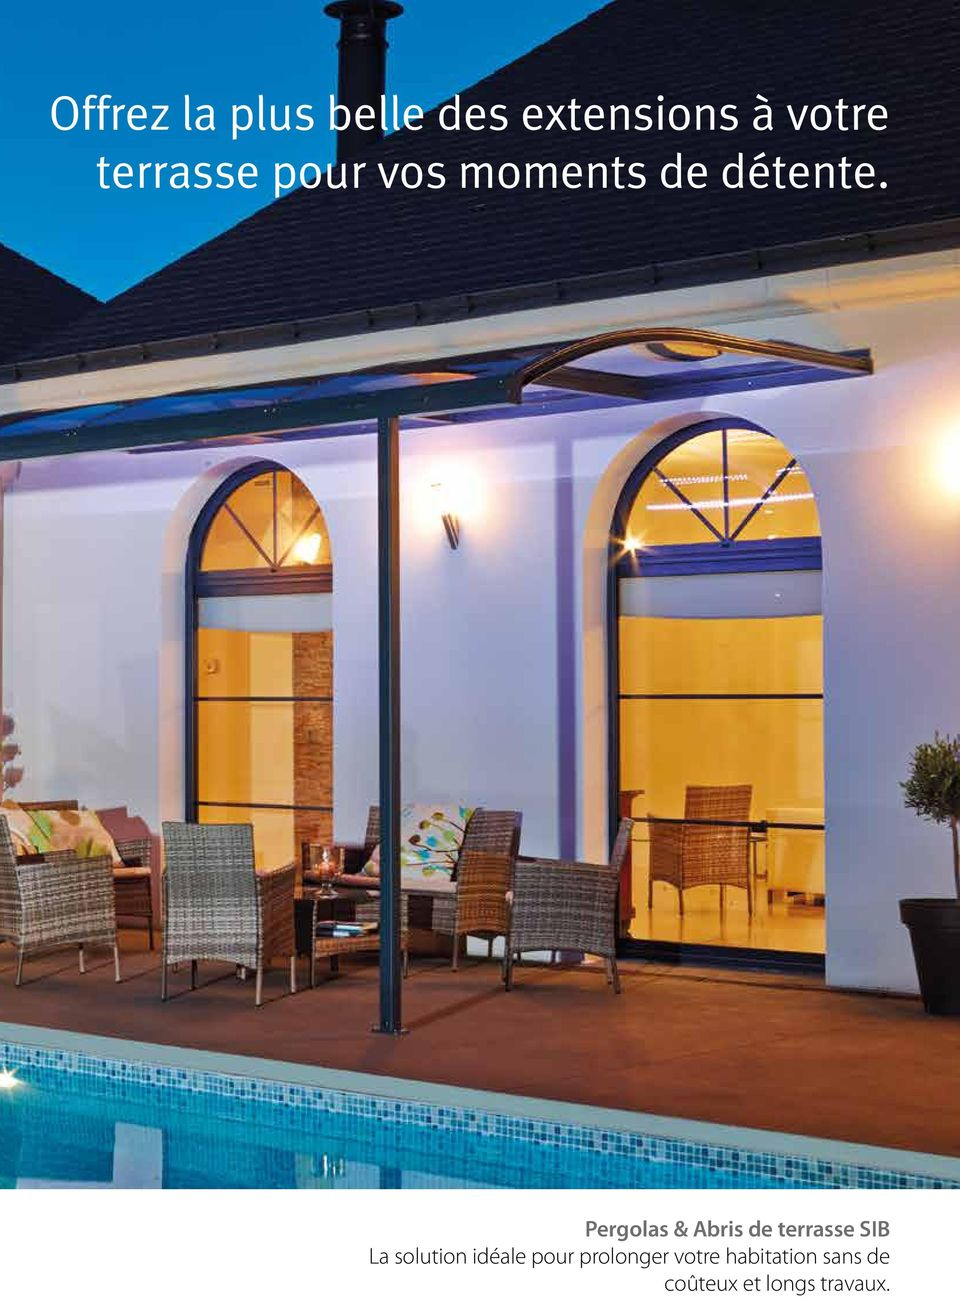 Pergolas & Abris de terrasse SIB La solution